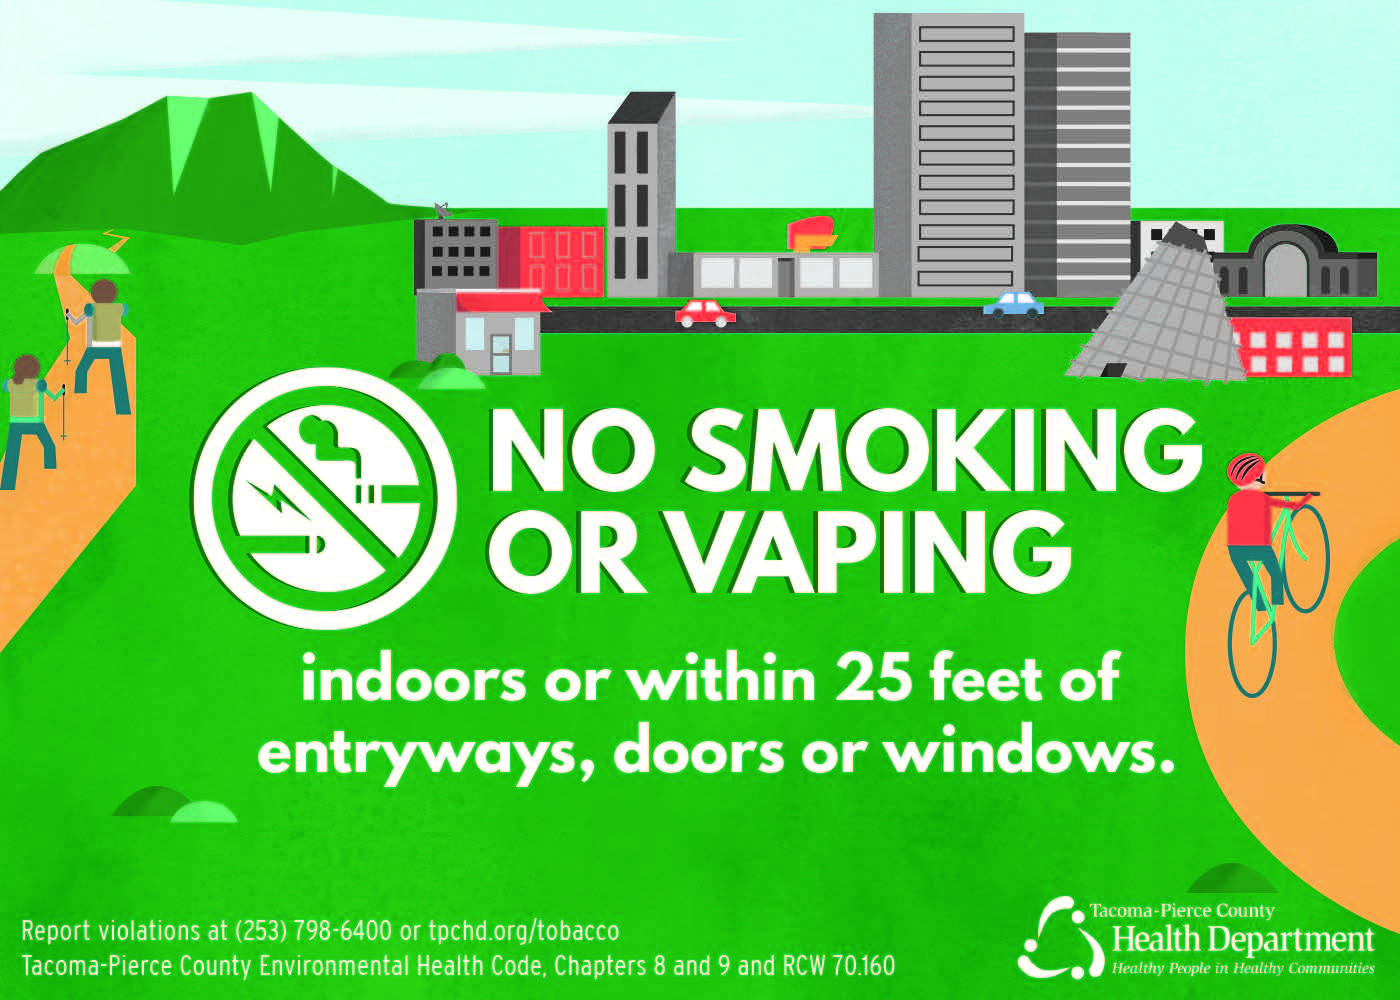 No smoking or vaping indoors or within 25 feet of entryways, doors or windows.